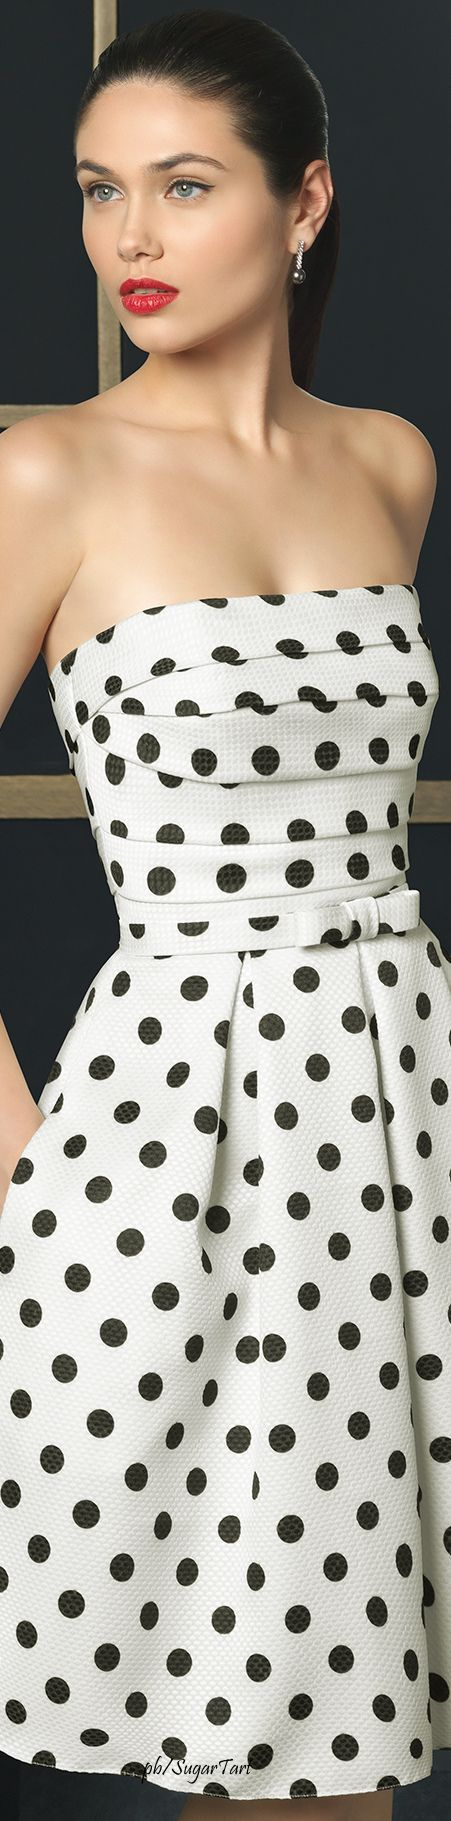 In love with this dress. Dots ♥